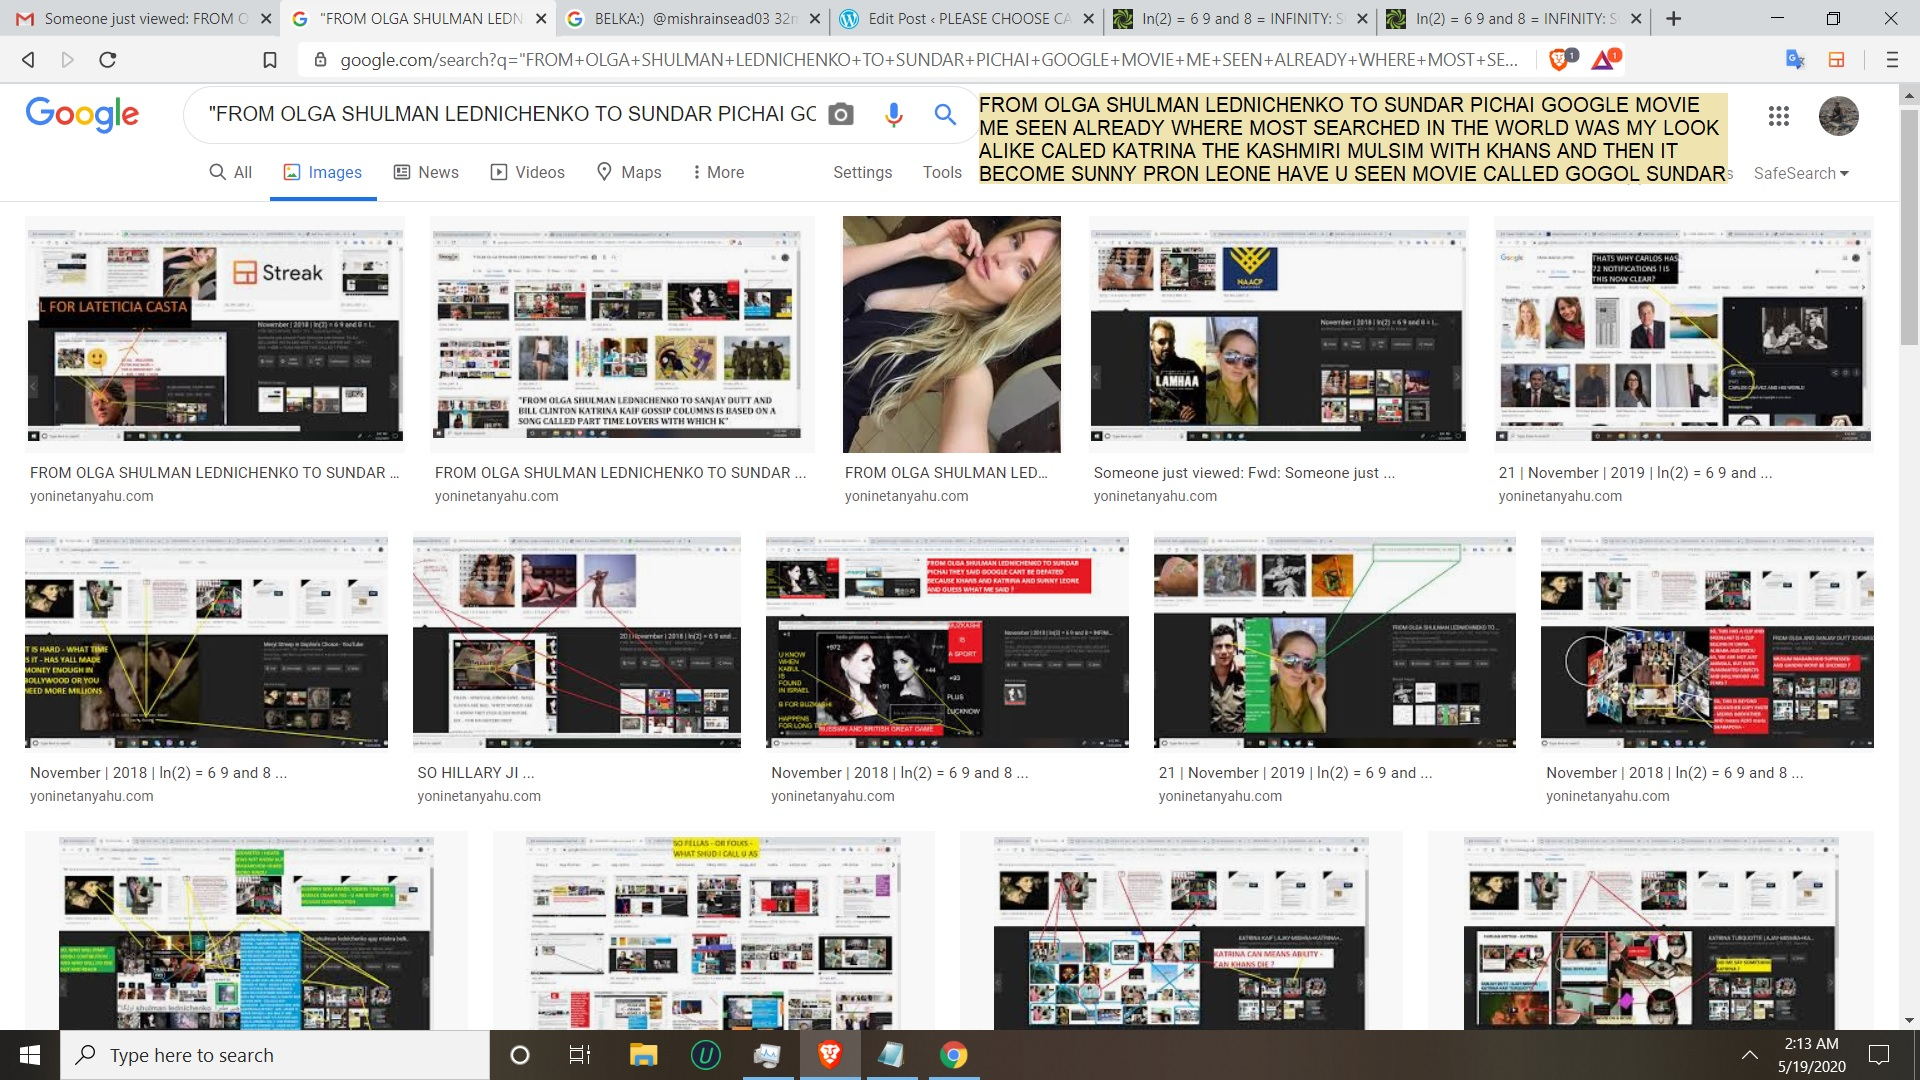 FROM OLGA SHULMAN LEDNICHENKO TO SUNDAR PICHAI GOOGLE MOVIE ME SEEN ALREADY WHERE MOST SEARCHED IN THE WORLD WAS MY LOOK ALIKE CALED KATRINA THE